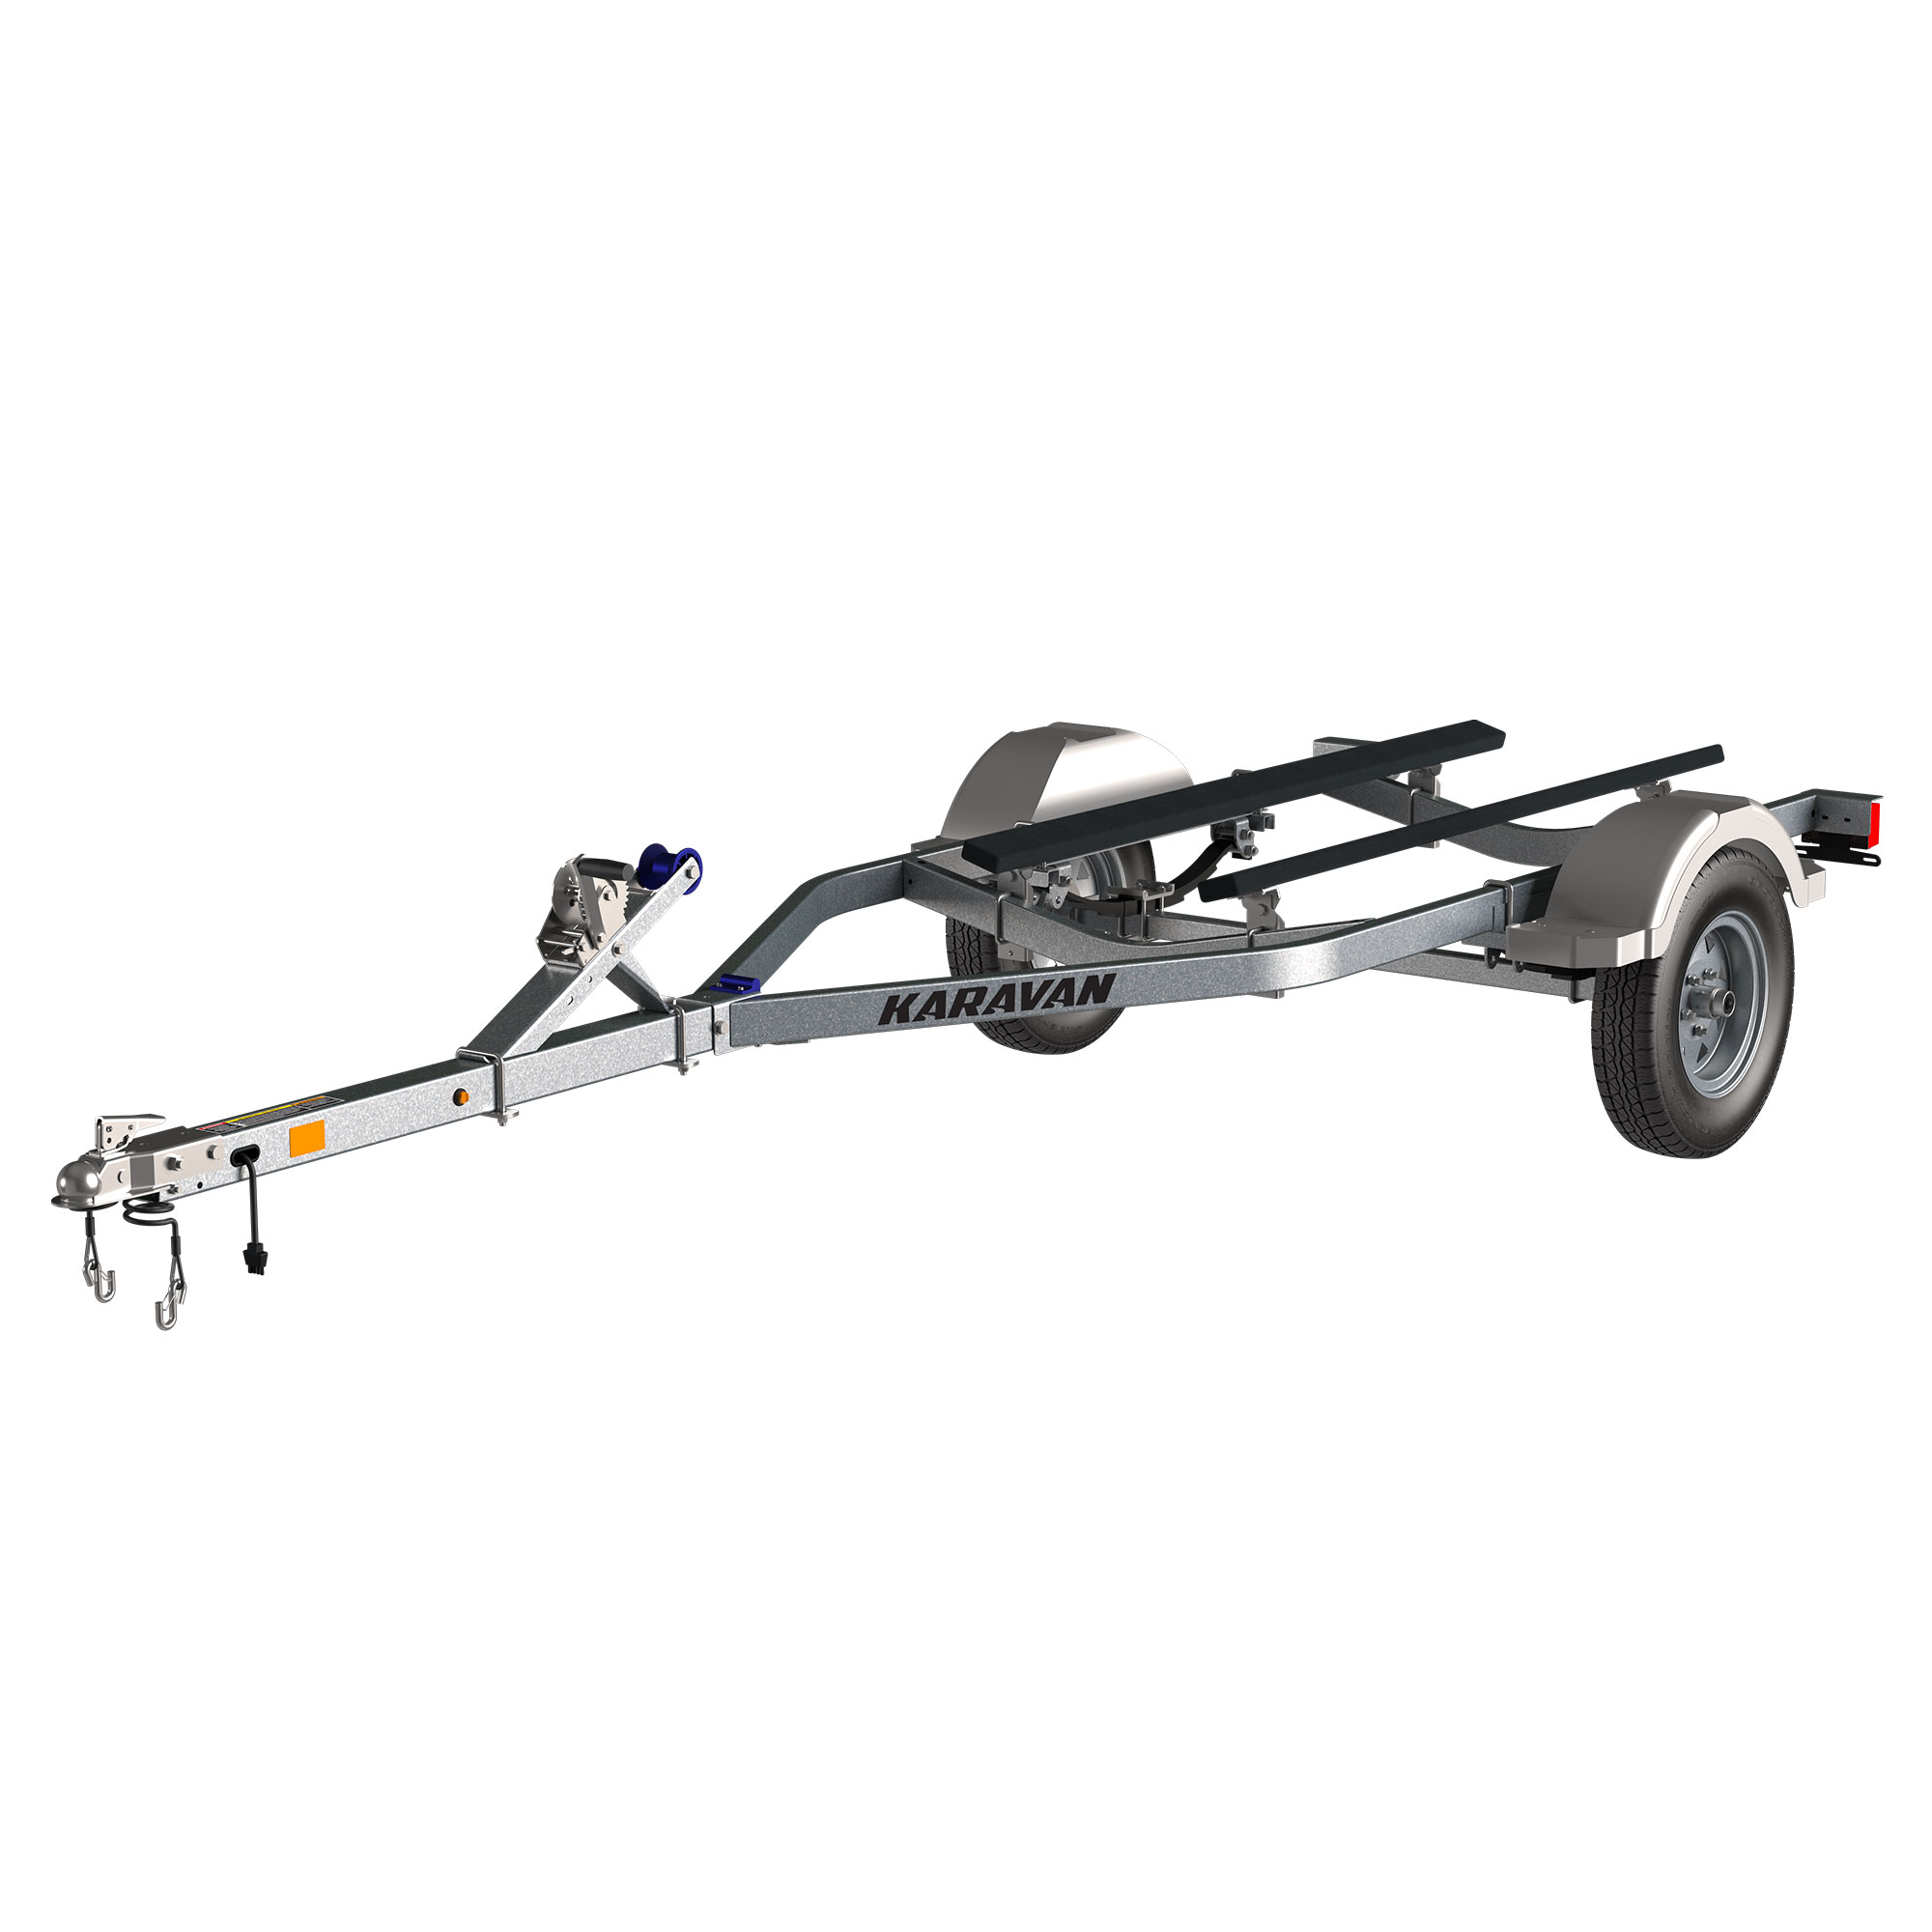 Karavan Trailer's Single Watercraft Steel Trailer w/Step Fender, model number WCE-1500-46-GL